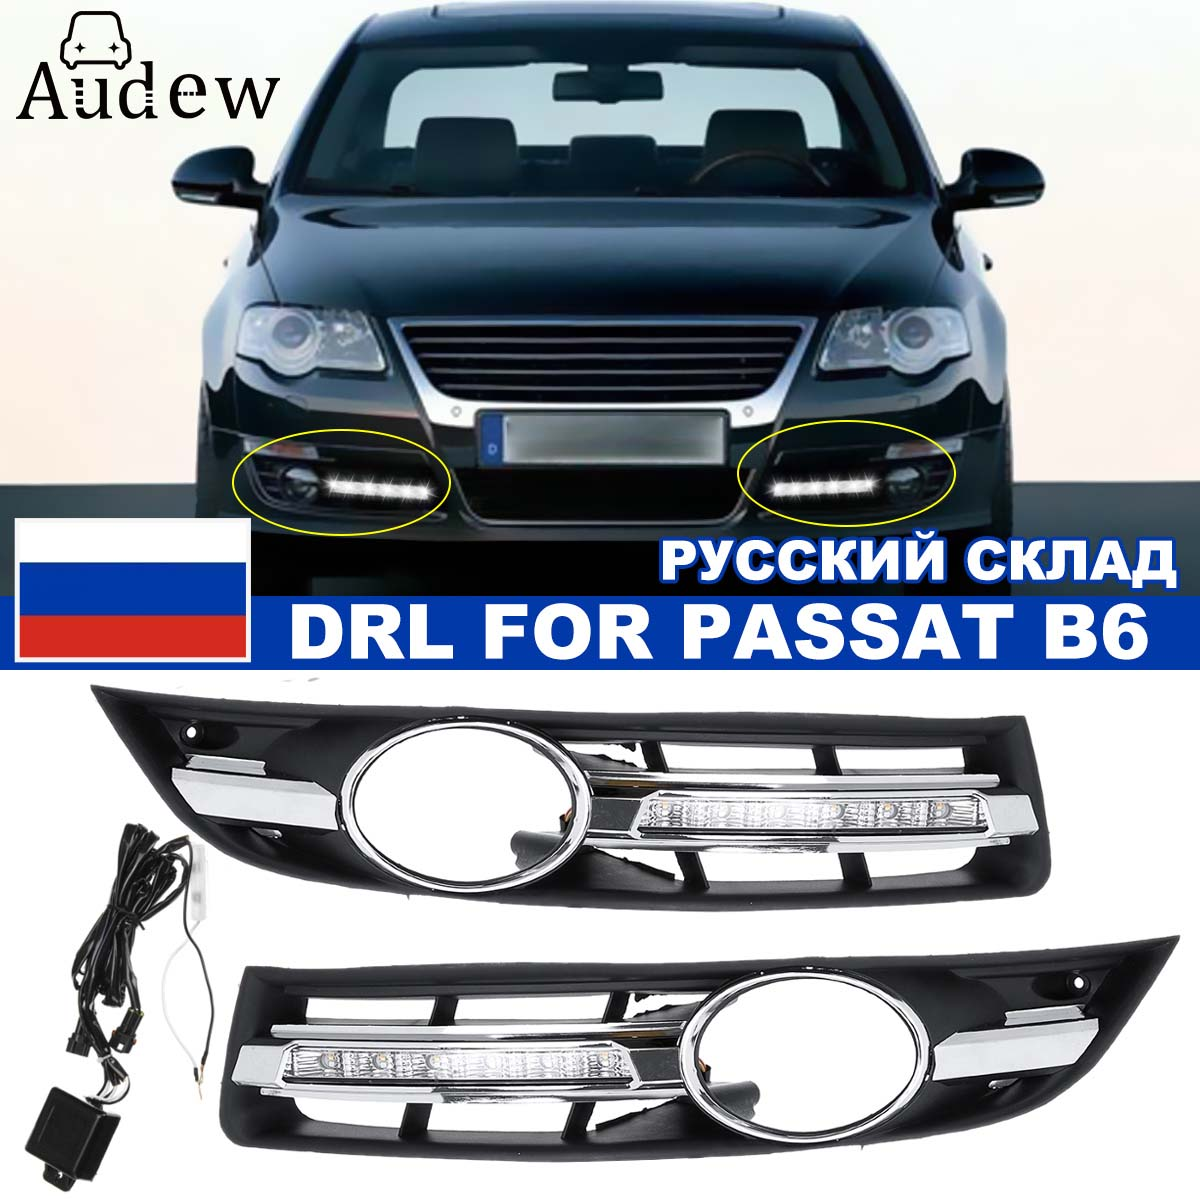 2 X Car LED DRL For VW Volkswagen Passat B6 2007 2008 2009 2010 2011 Car Daytime Running Lights Front Bumper With Fog Light Hole